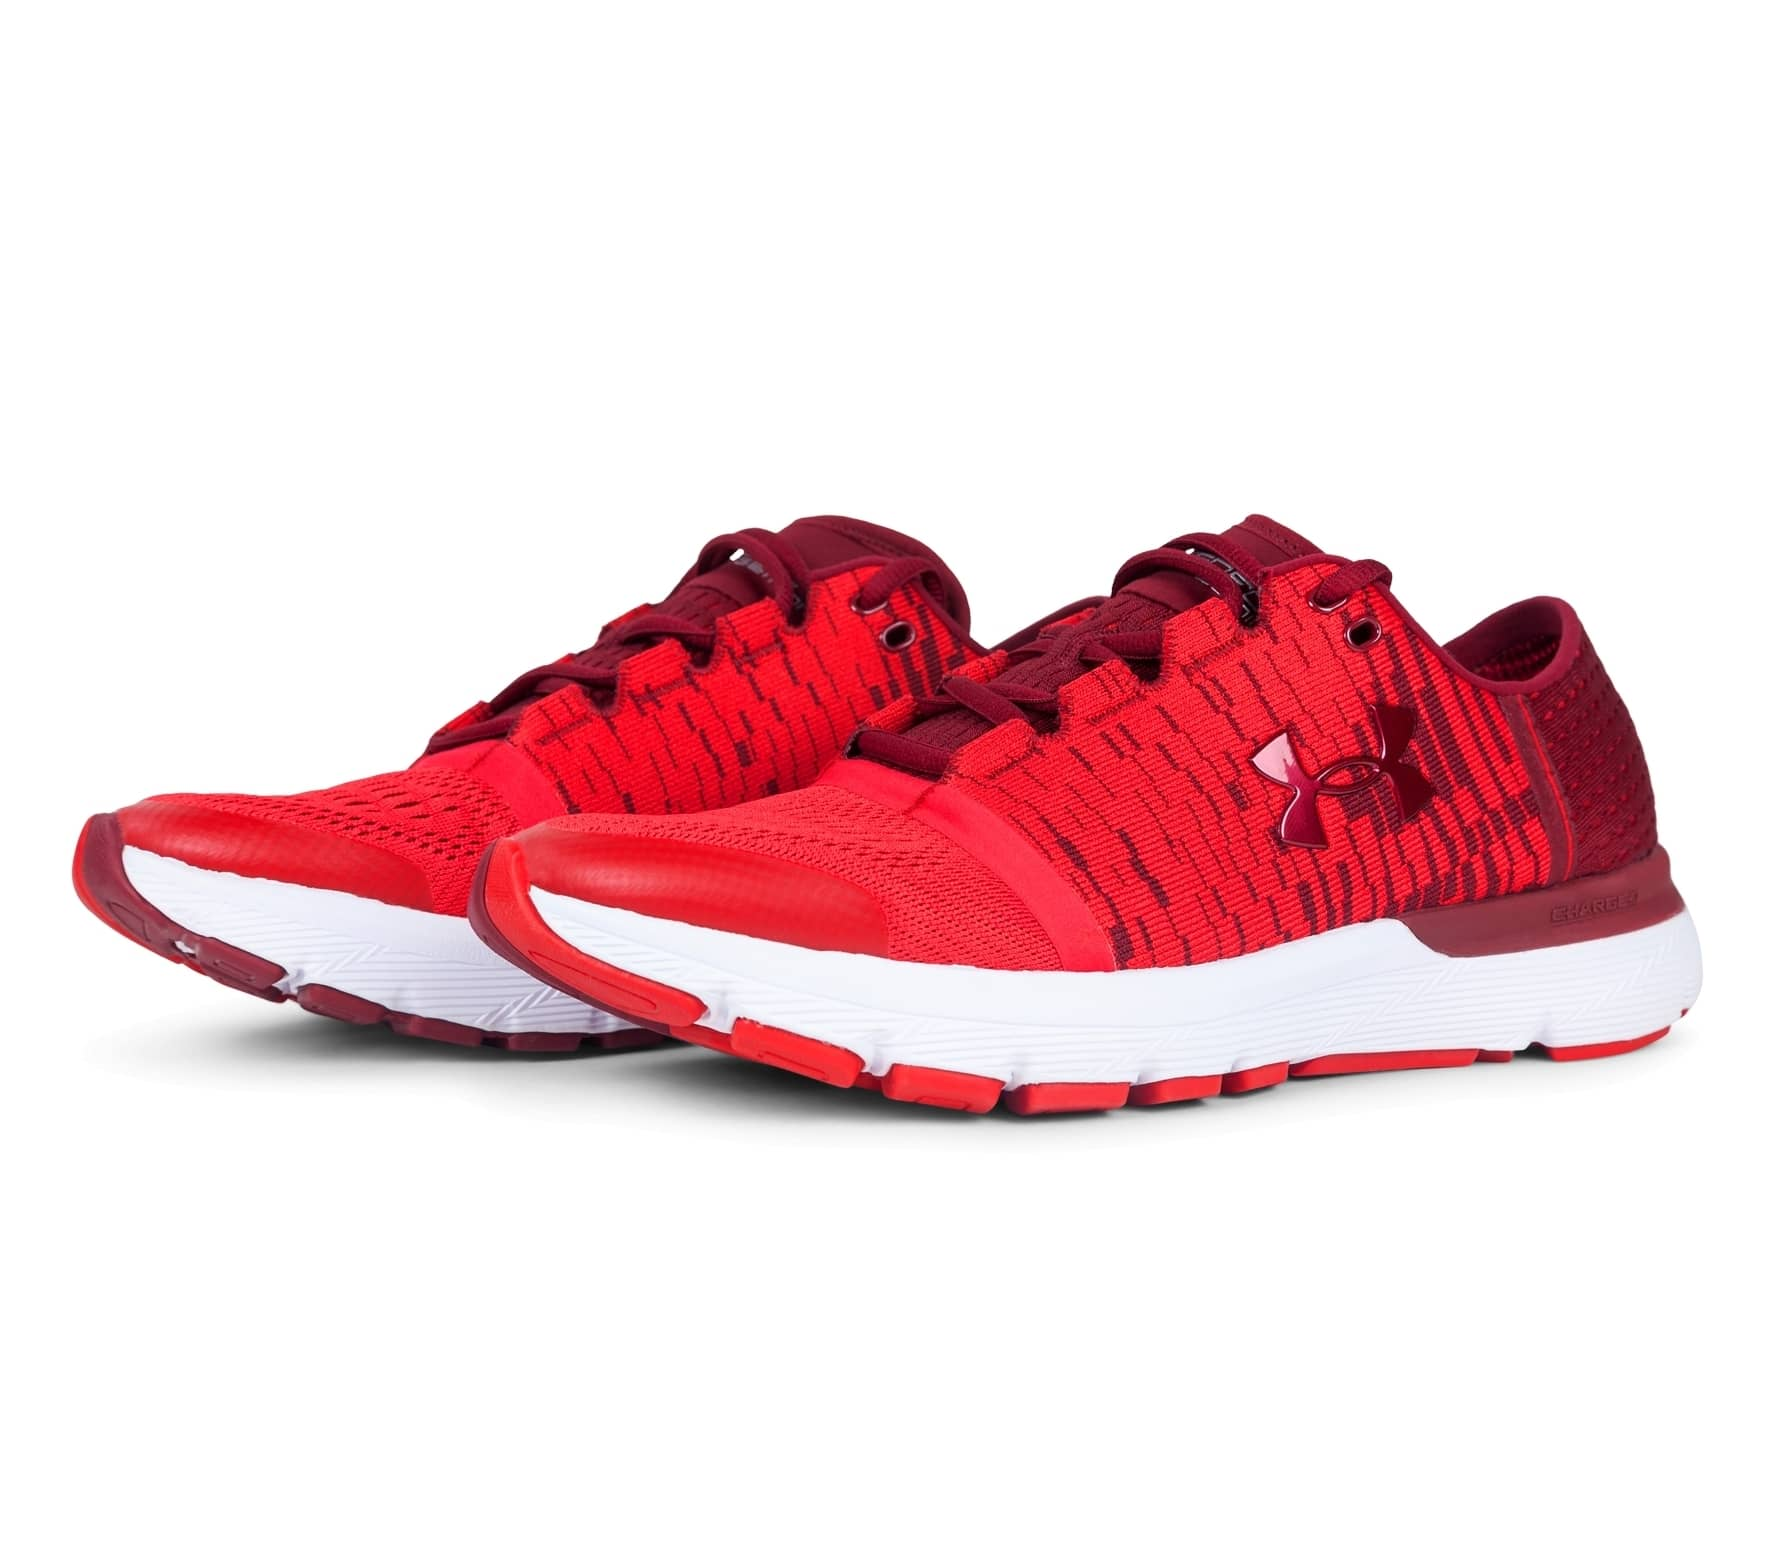 release date 724c5 37556 Under Armour Speedform Gemini 3 GR Men red